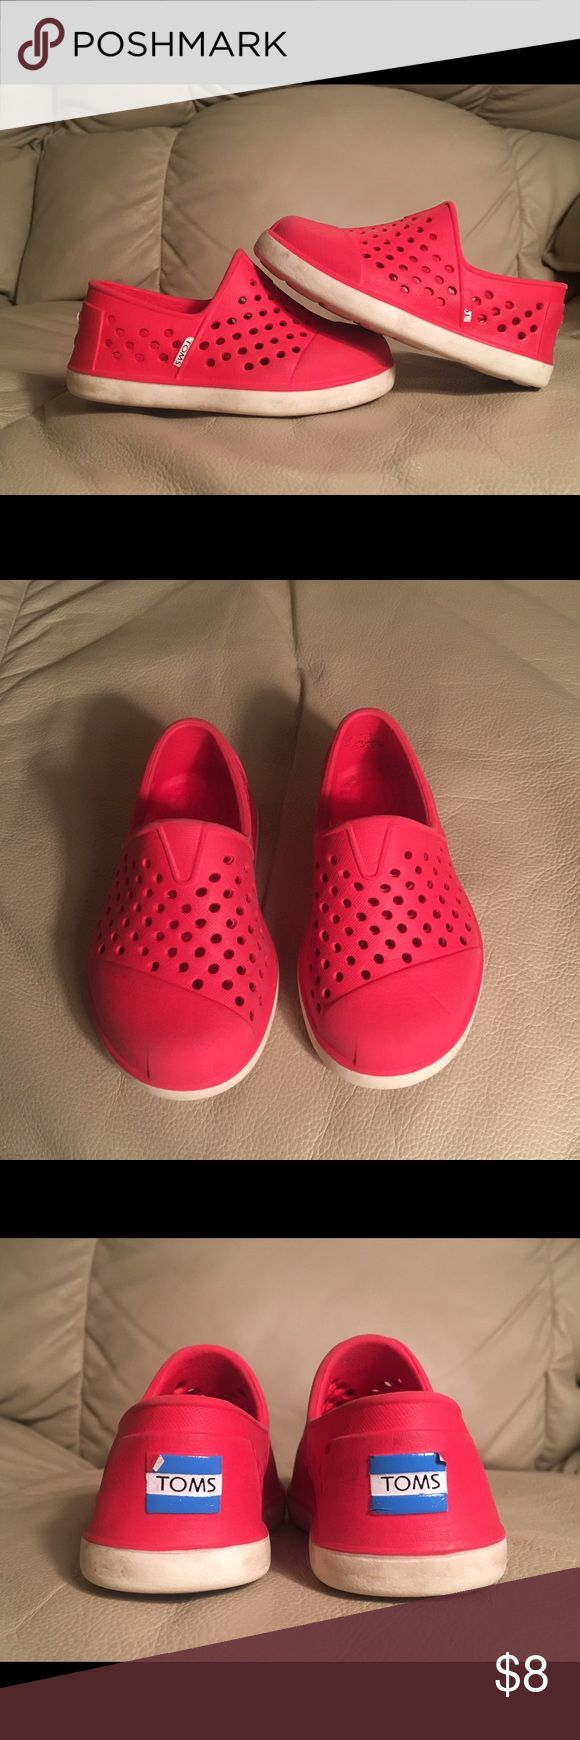 Red TOMS slip on shoes, size 5T Preloved red toddler TOMS, size 5T. Lightweight and waterproof. TOMS Shoes